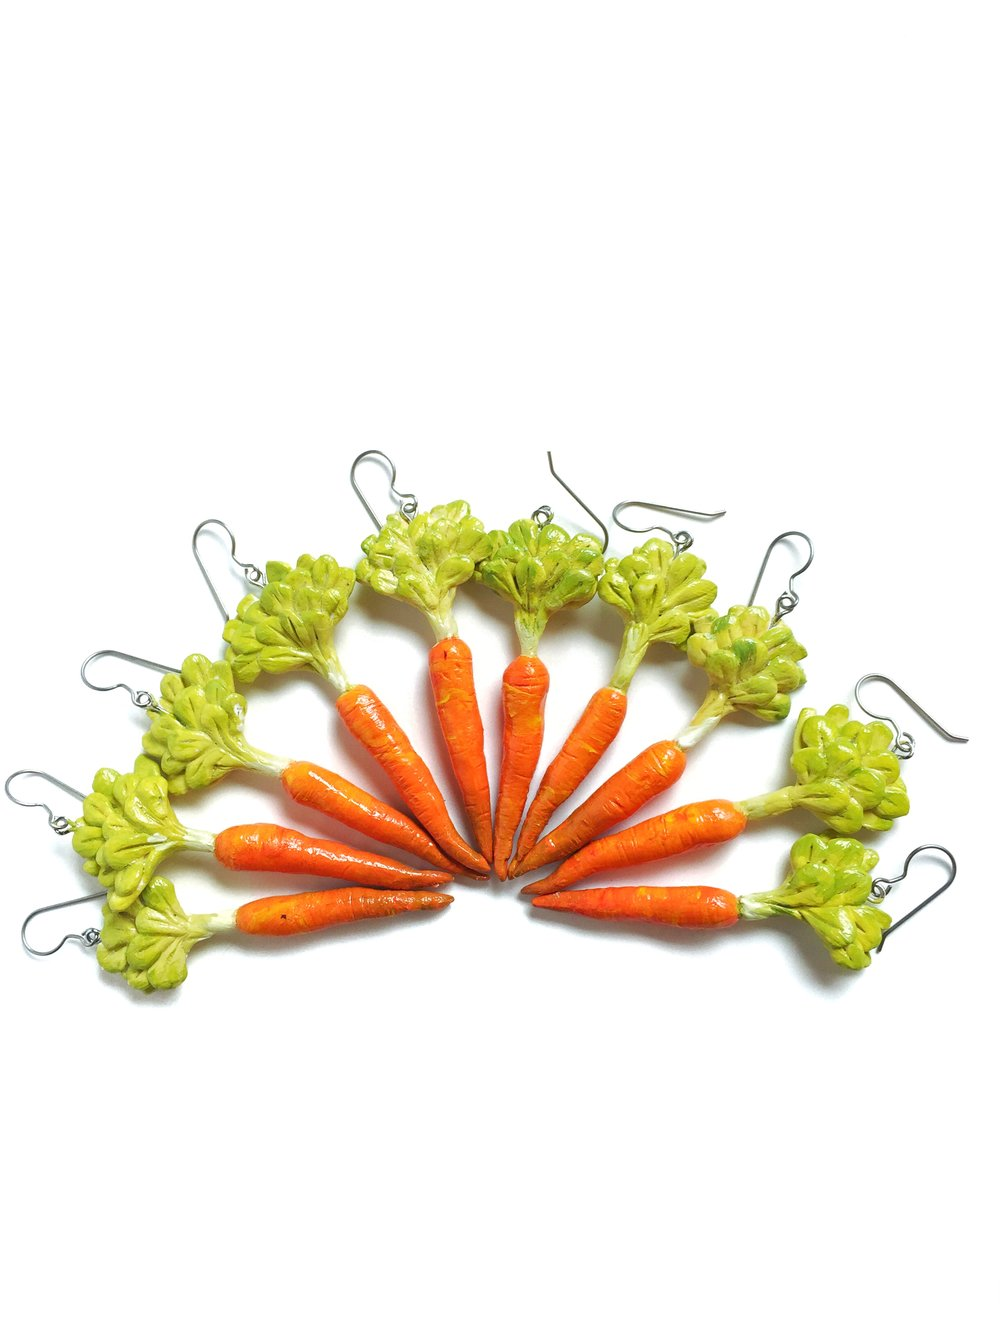 Carrot Earrings, Polymer Clay with Acrylic Paint, 2018